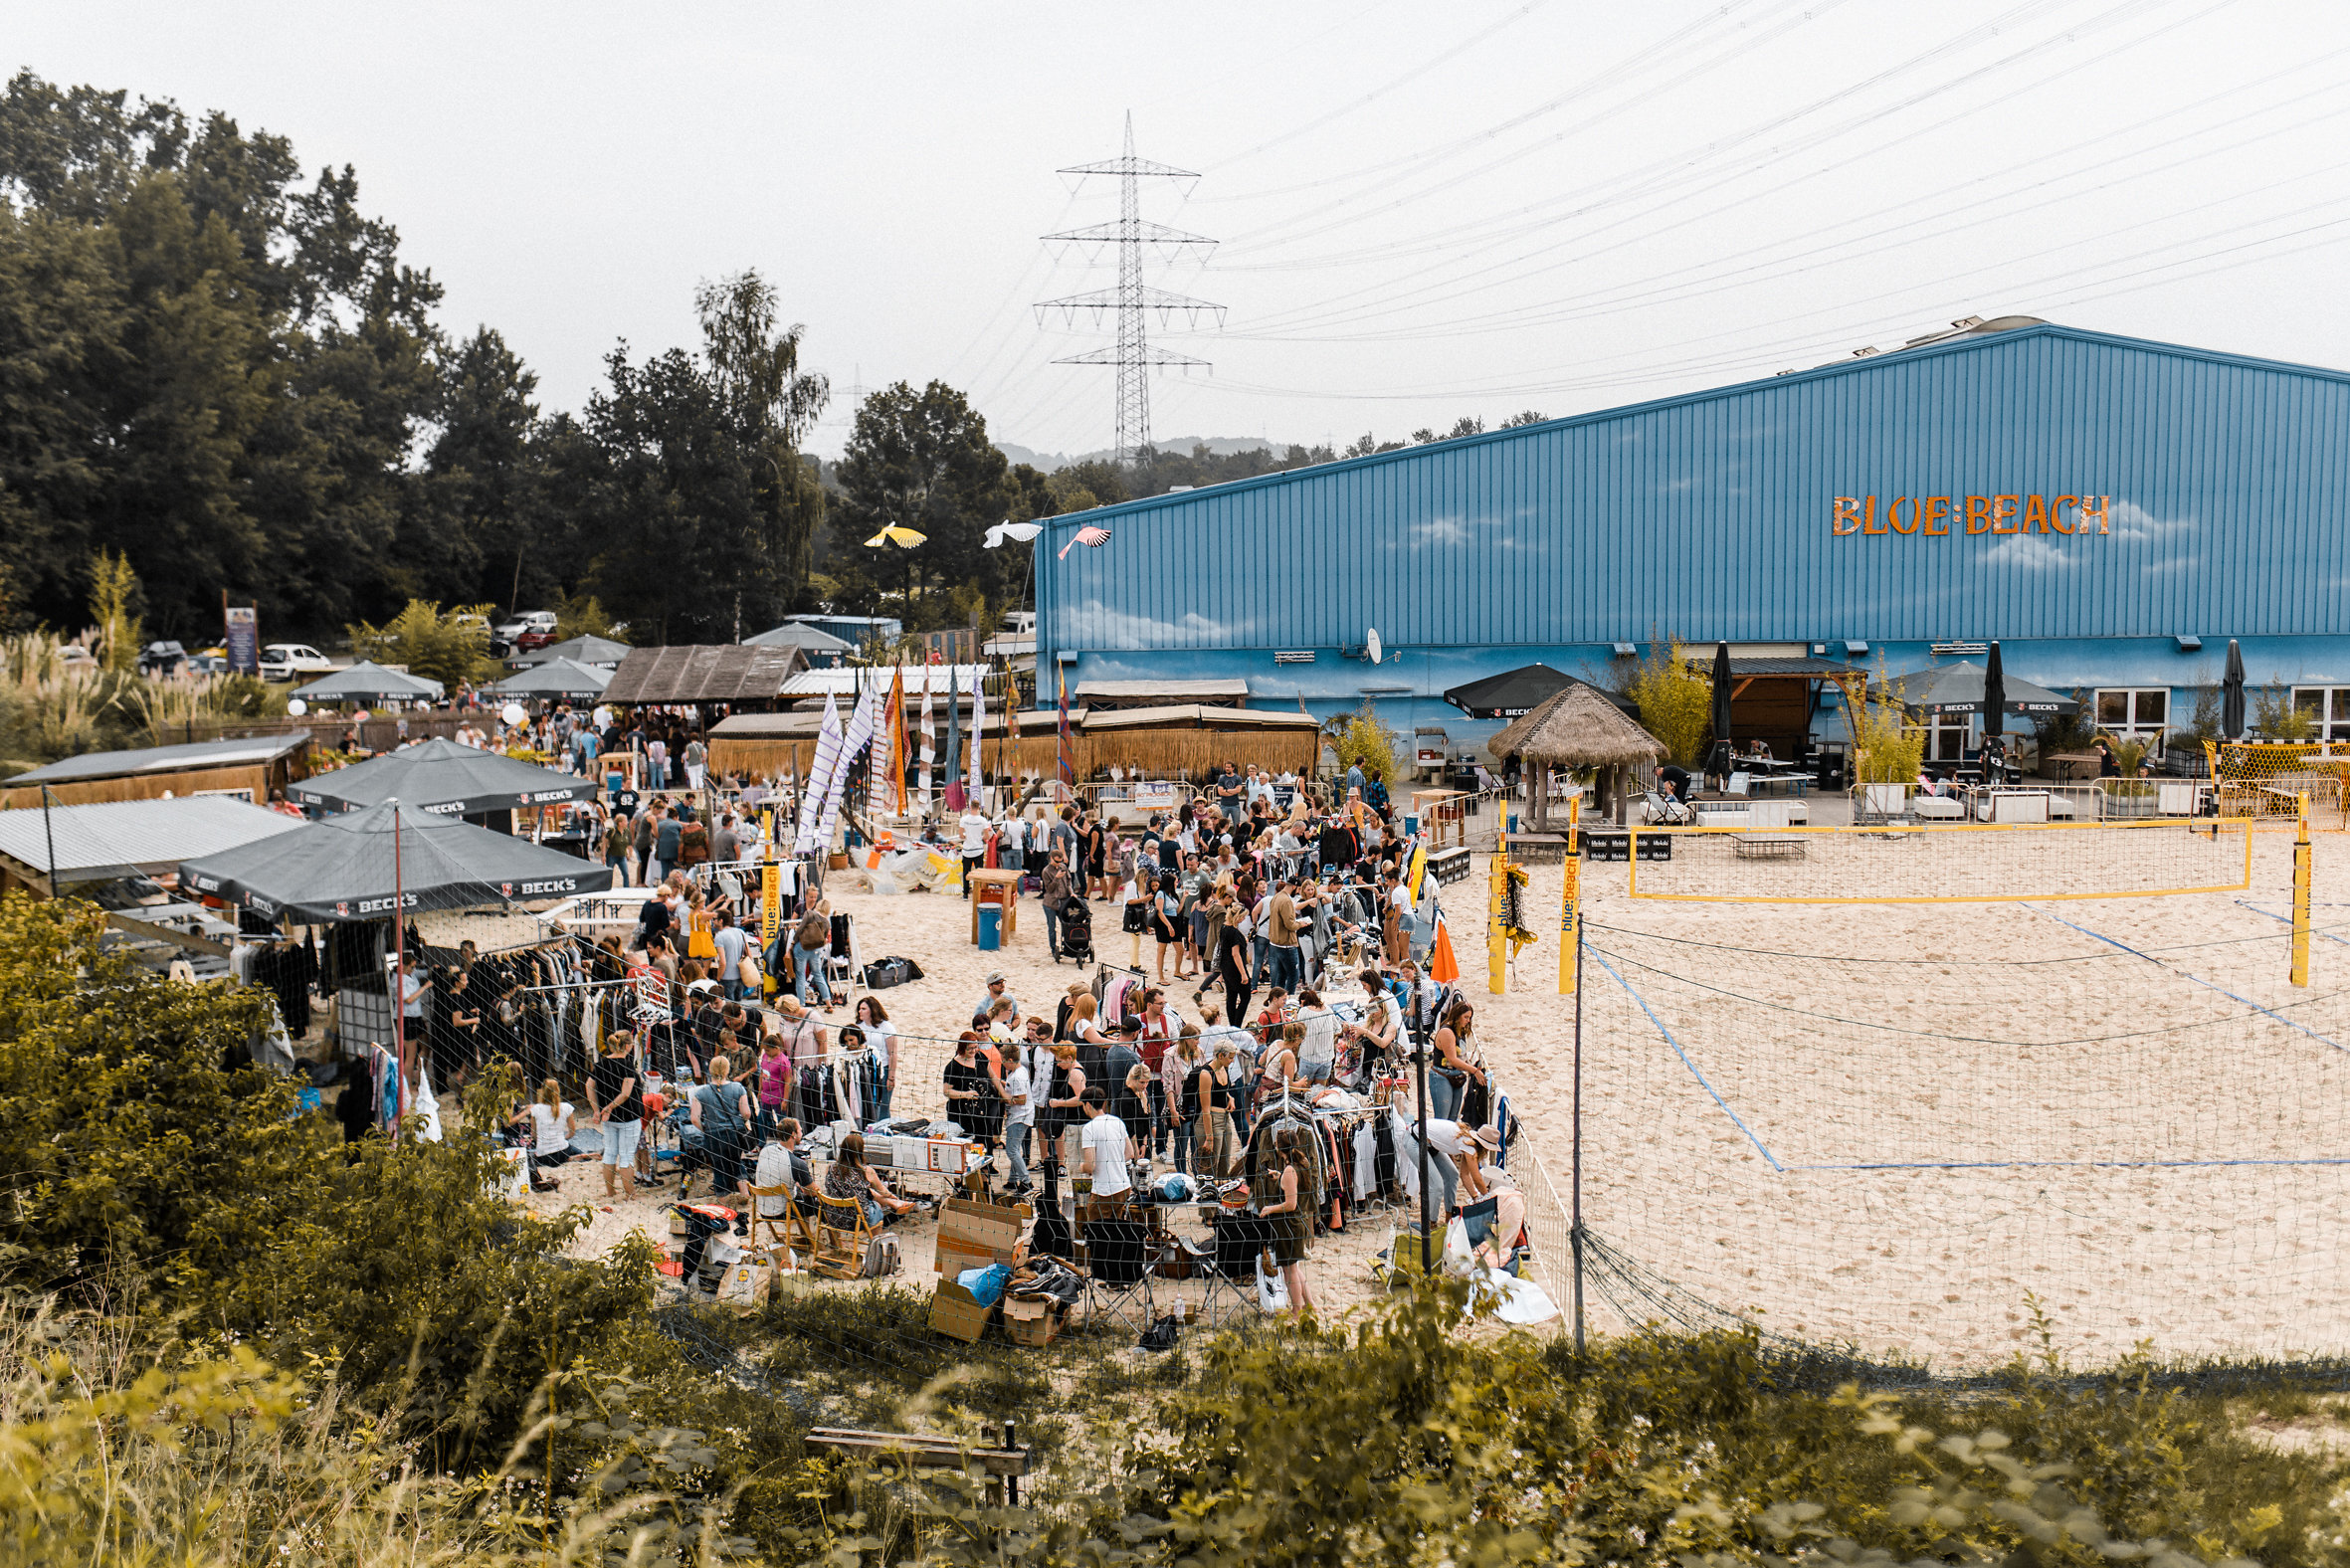 Der Flohmarkt am blue:beach in Witten